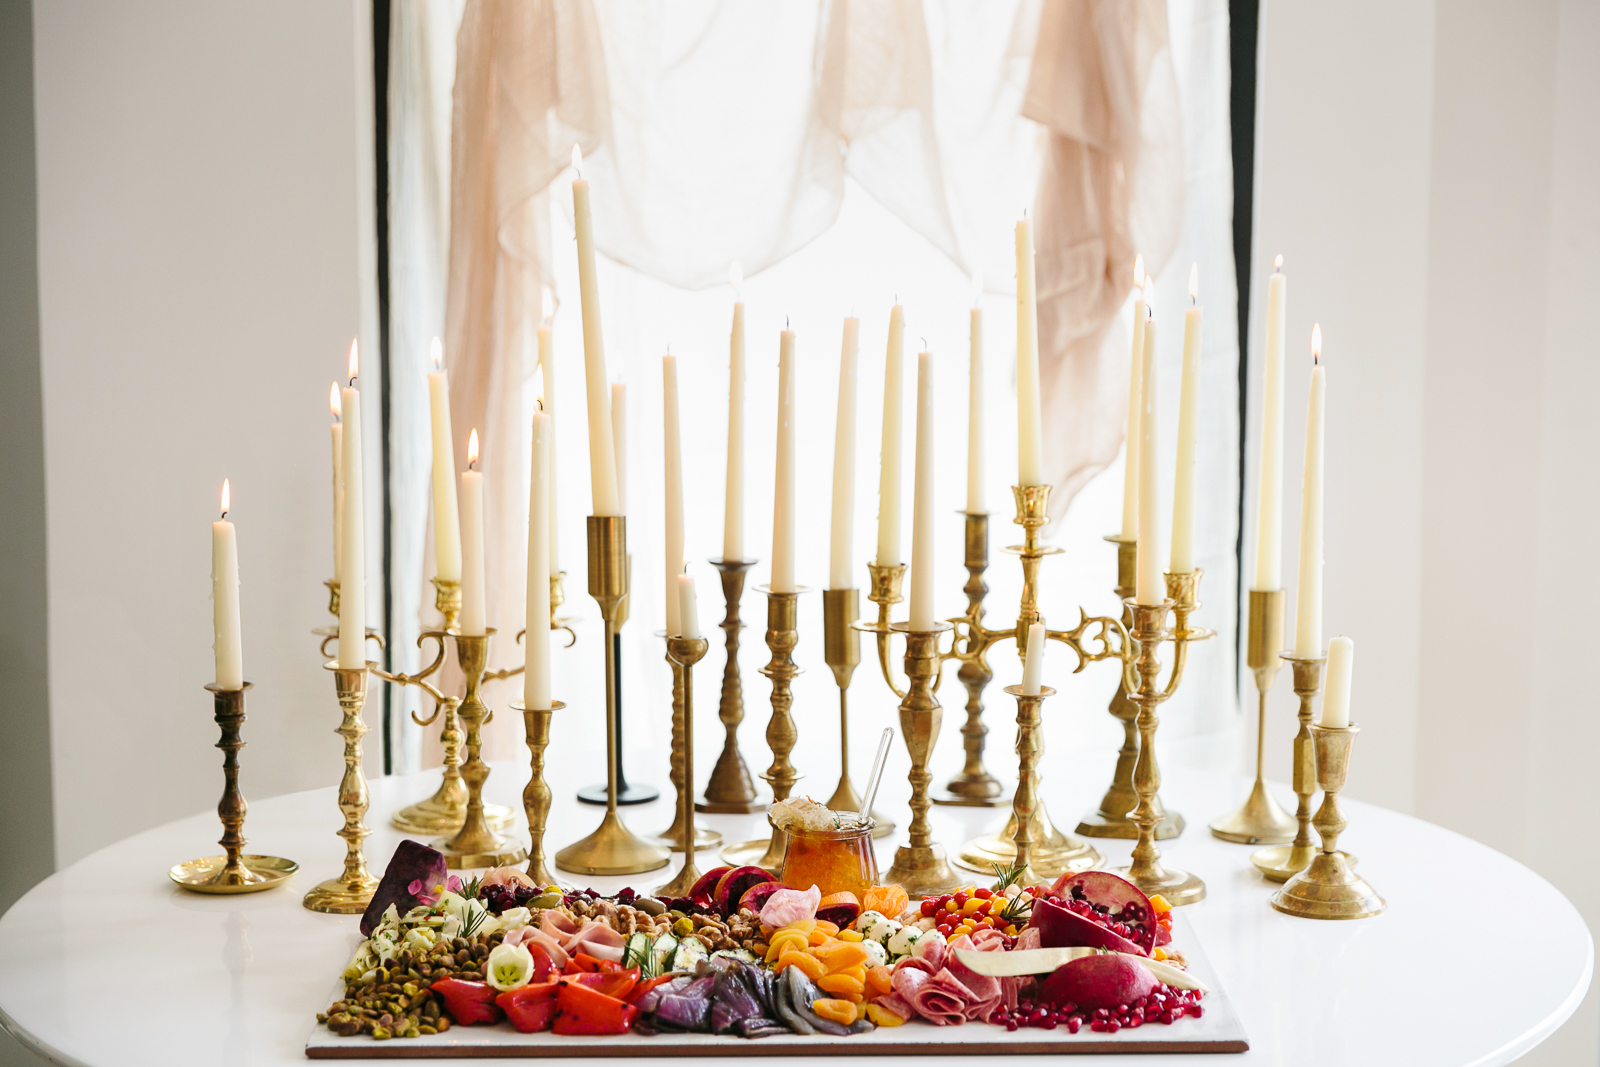 romeo and juliet valentines day party table with smorgasbord and gold candles